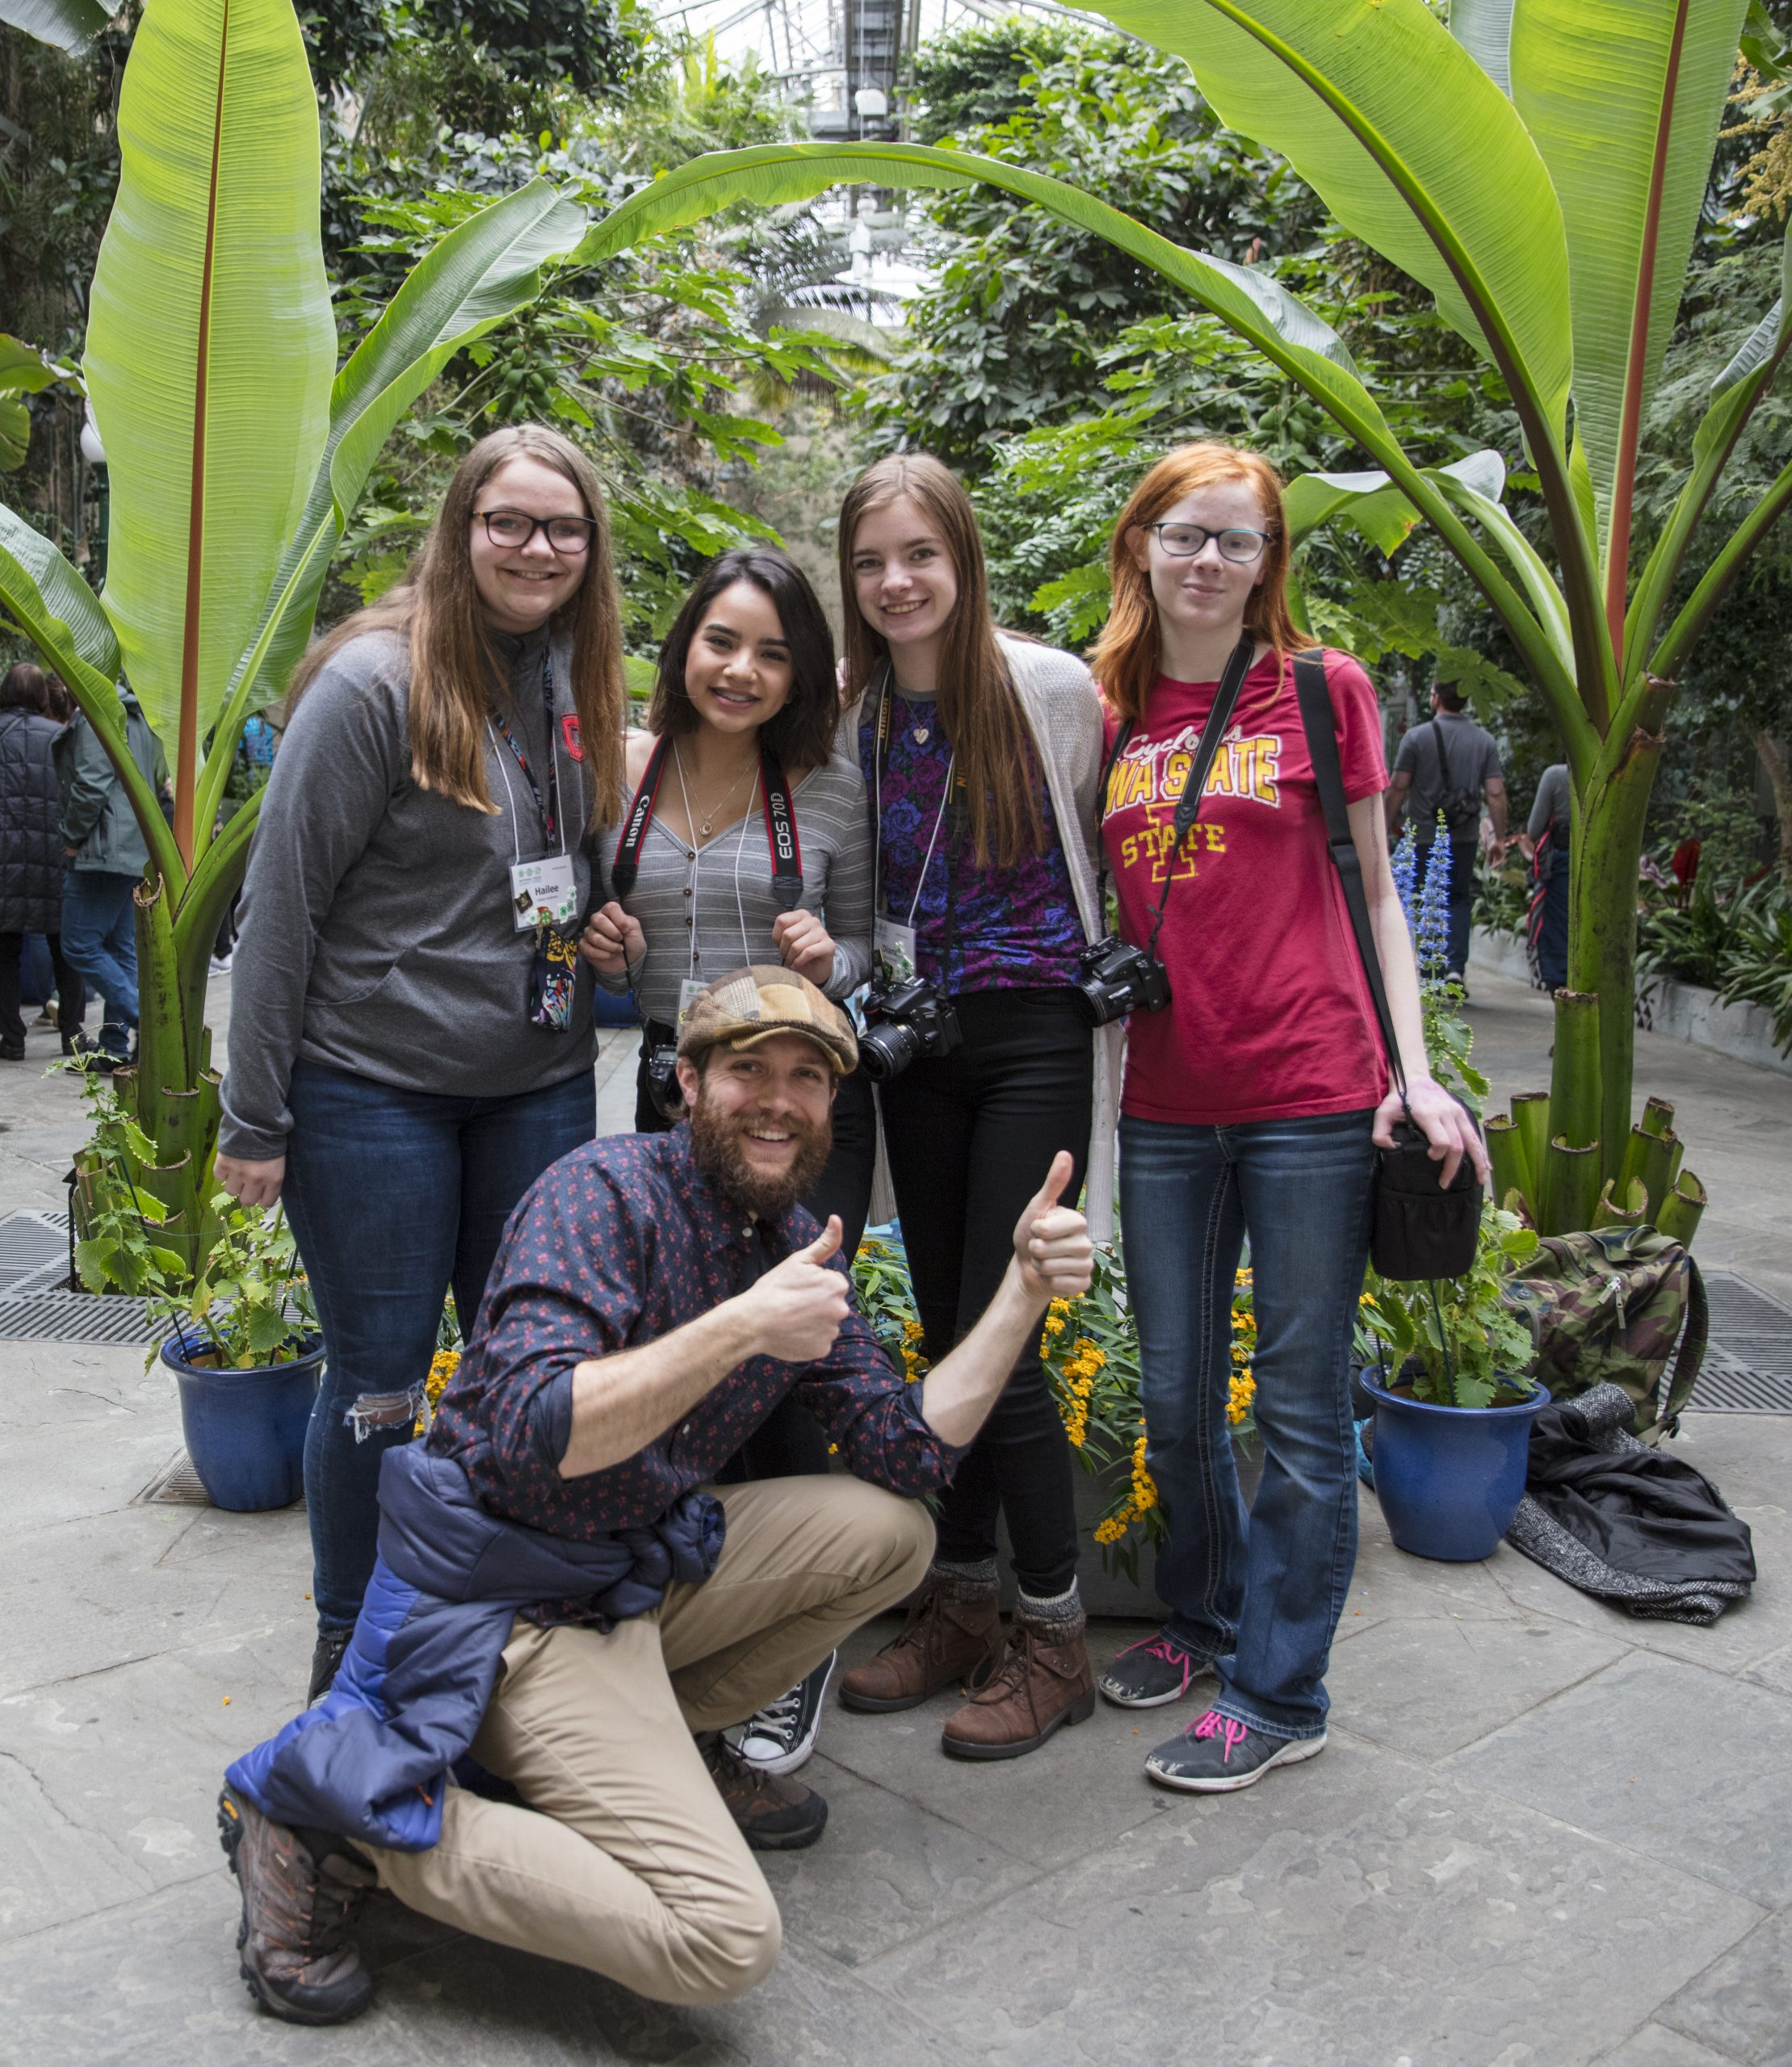 Clark Colby with Iowa 4-H youth photographers at National 4-H Photography Summit in Washington, DC